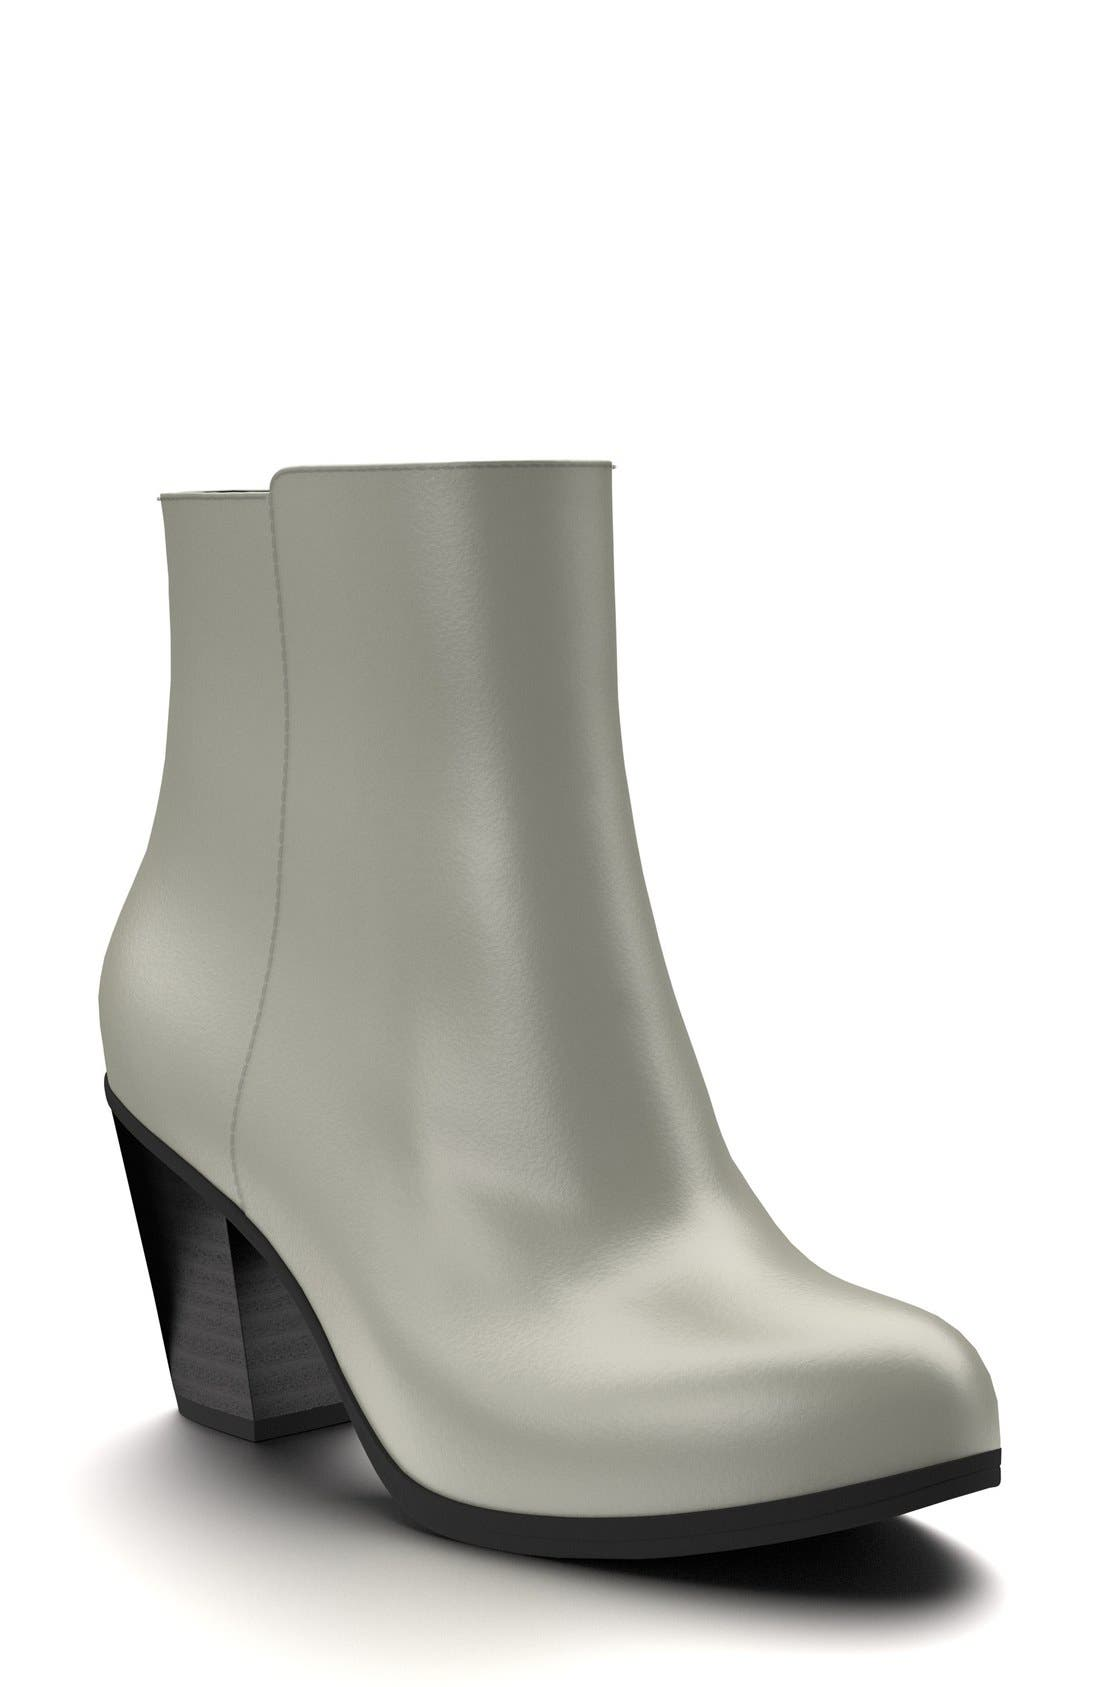 Alternate Image 1 Selected - Shoes of Prey Block Heel Bootie (Women)